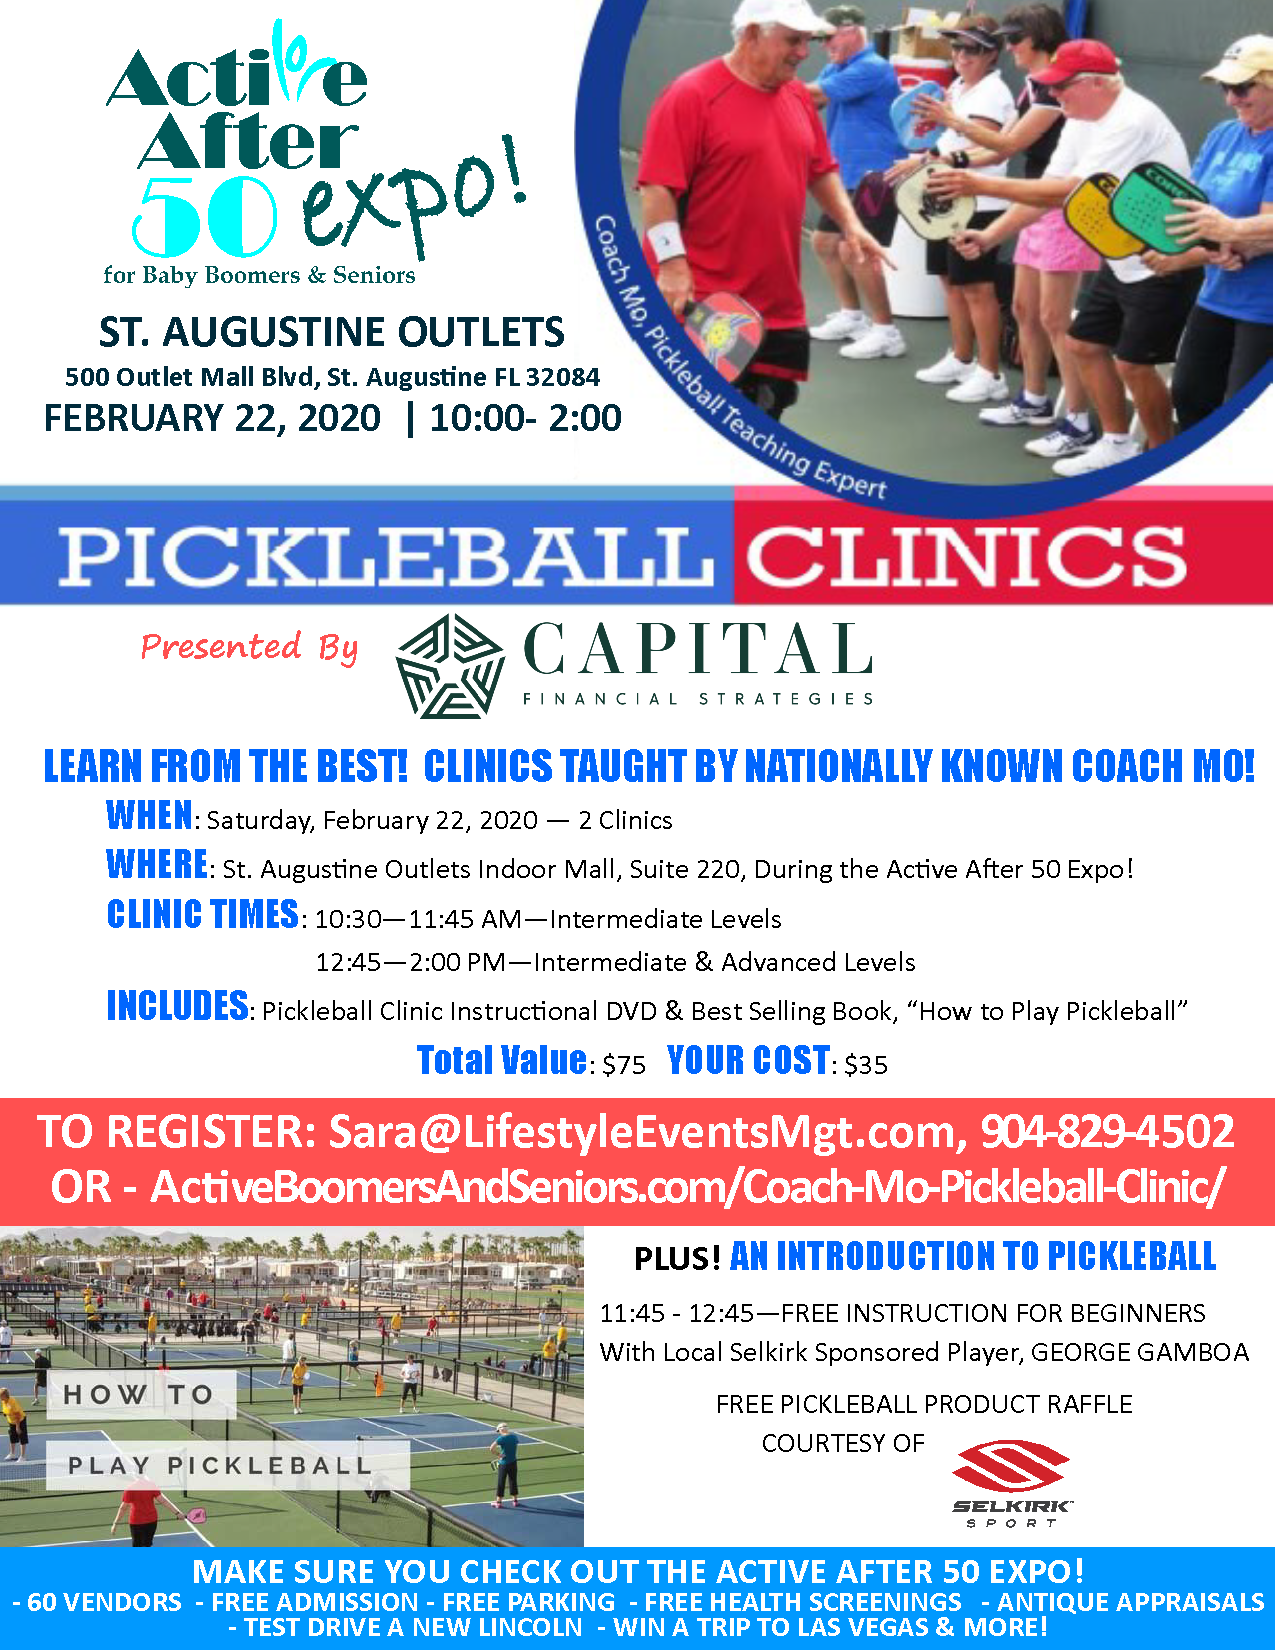 Coach Mo and George Gamboa St. Augustine Expo Pickleball Instruction Flyer